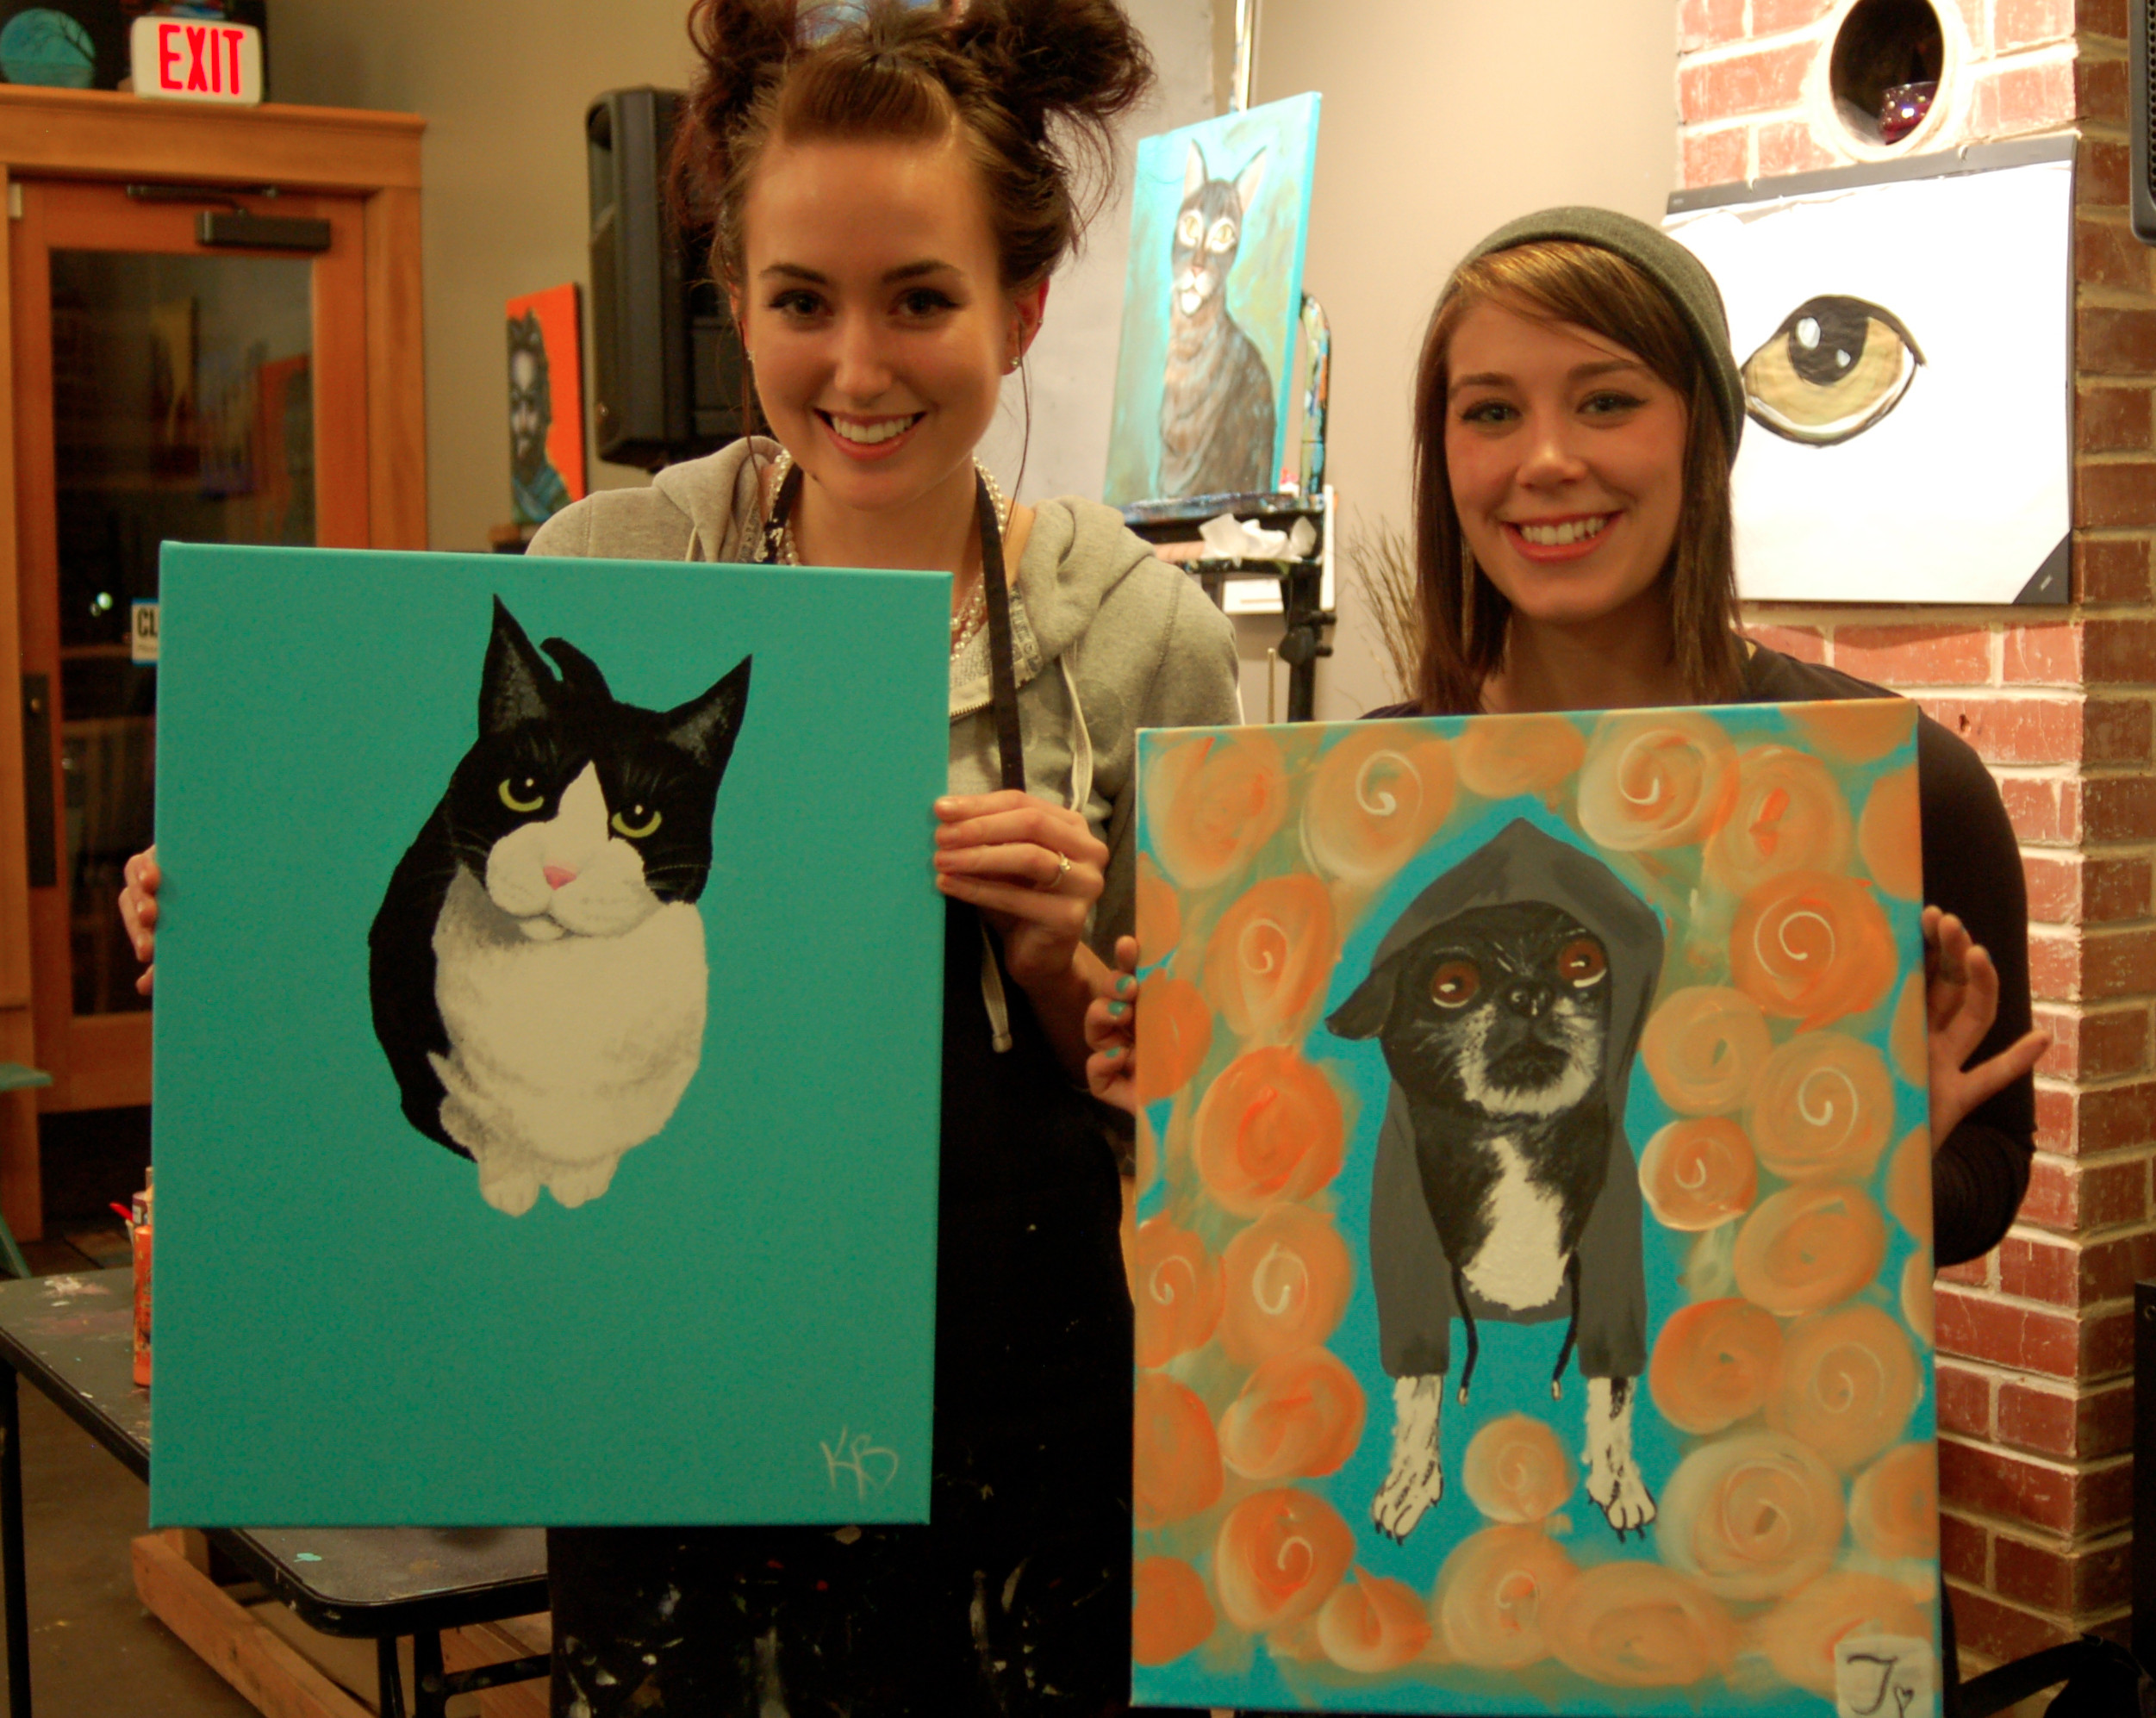 Painting - Your Choice 1:00 - 3:00 pm